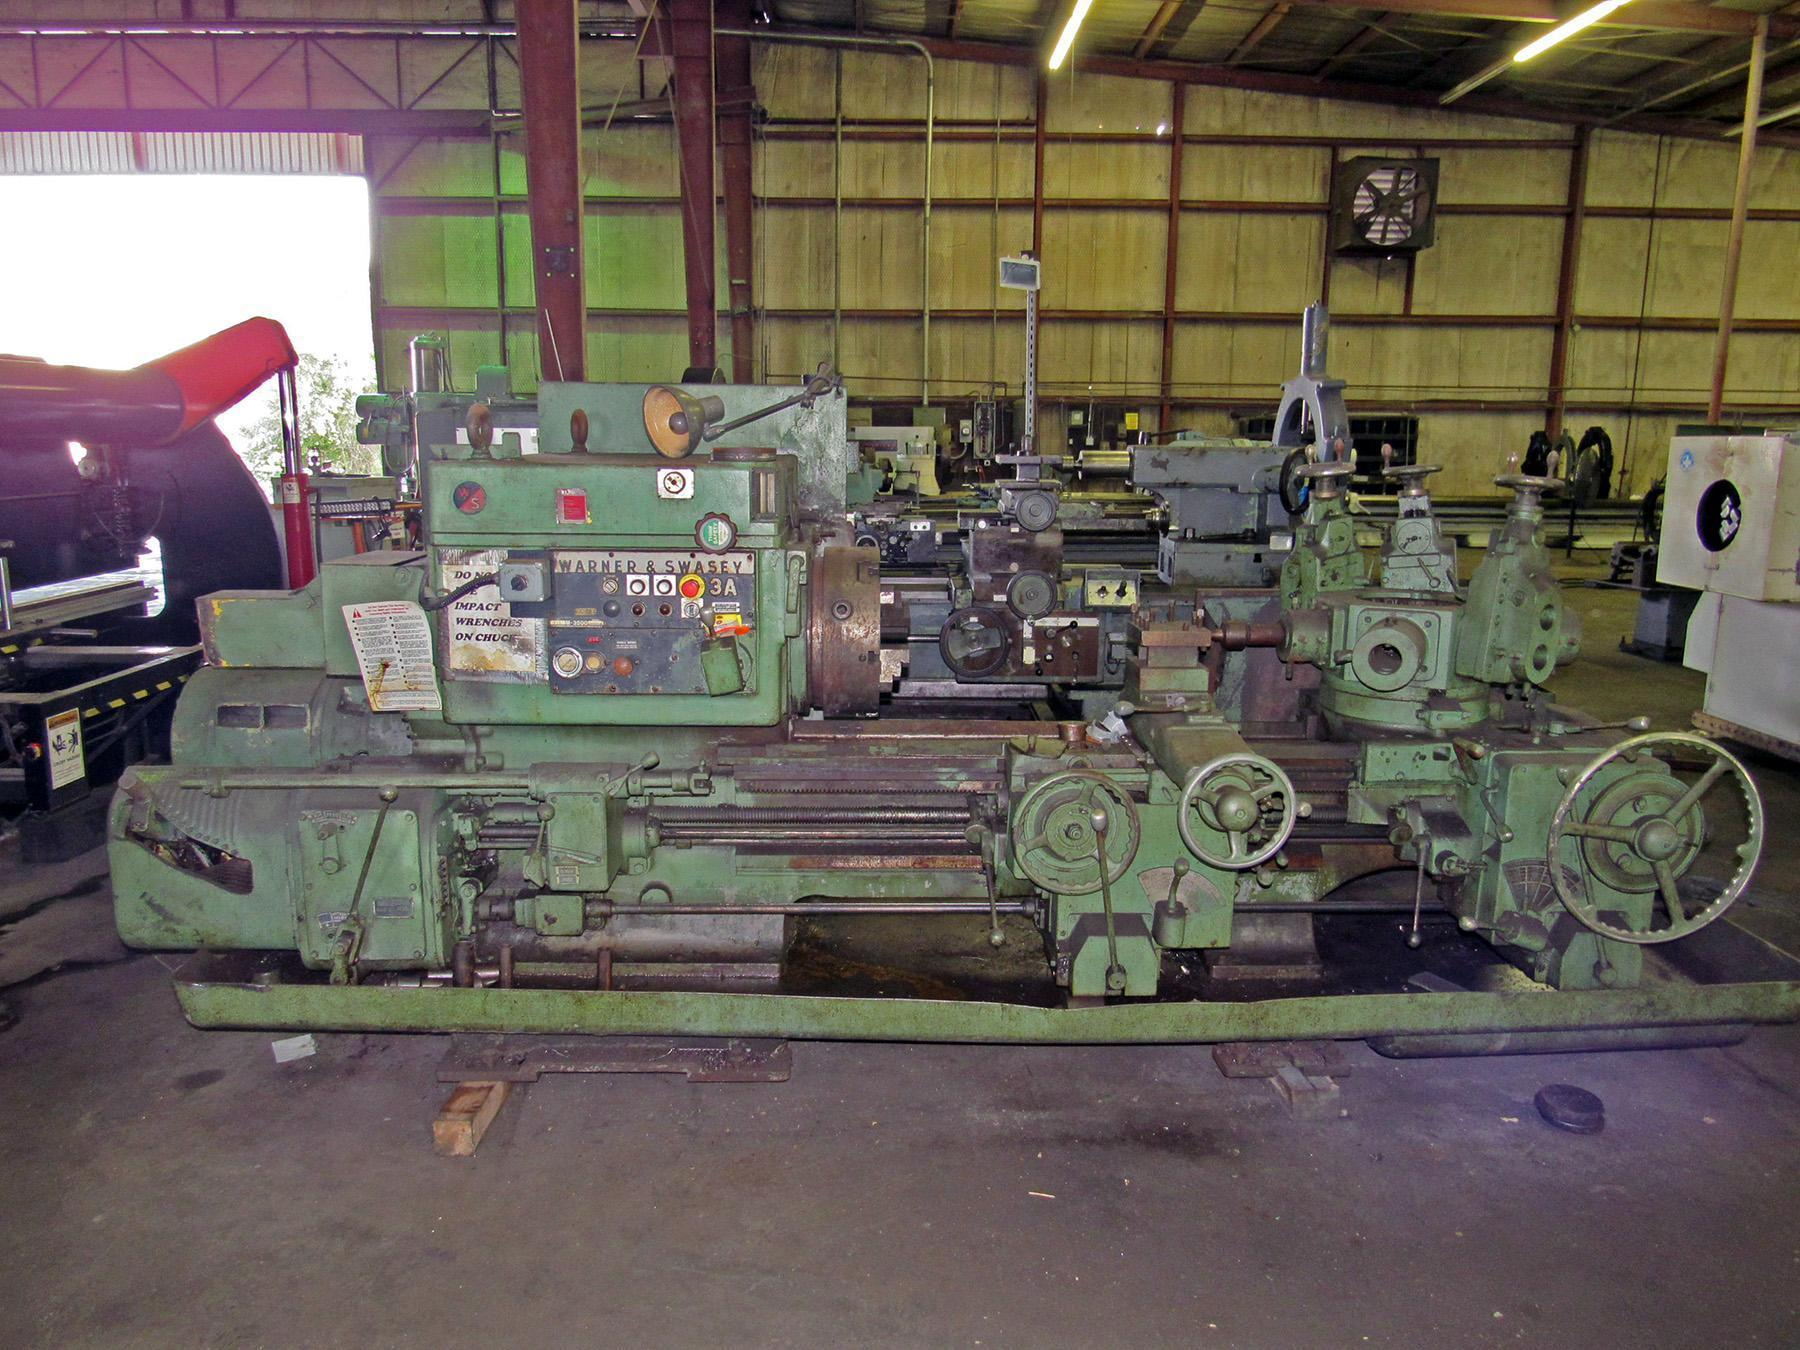 USED, 3A WARNER & SWASEY MODEL 3A TURRET LATHE WITH FIXED REAR TURRET